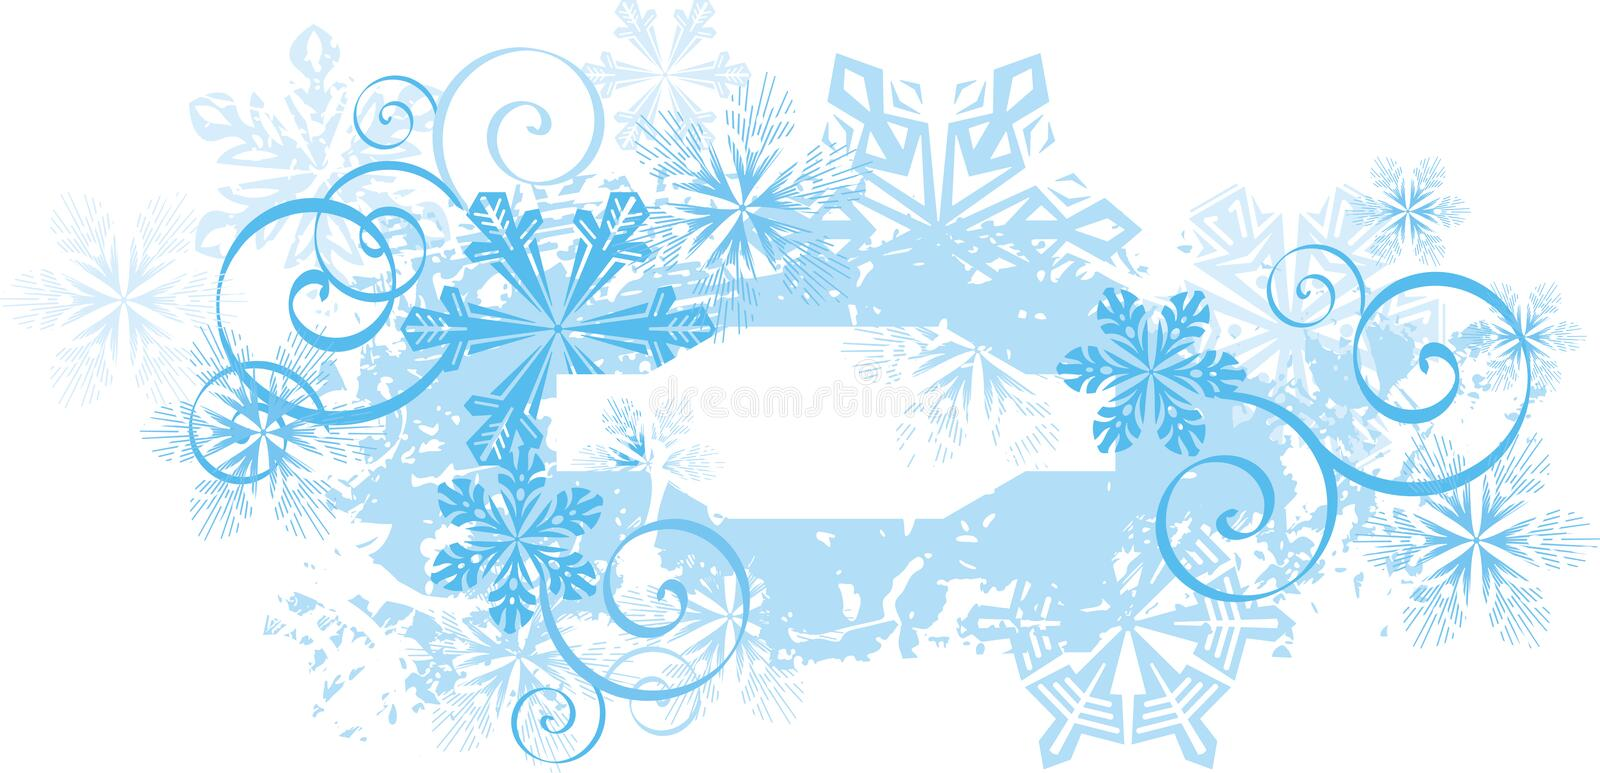 Ornamental winter background. Exquisite winter background series with snowflakes and grunge details, illustration vector illustration